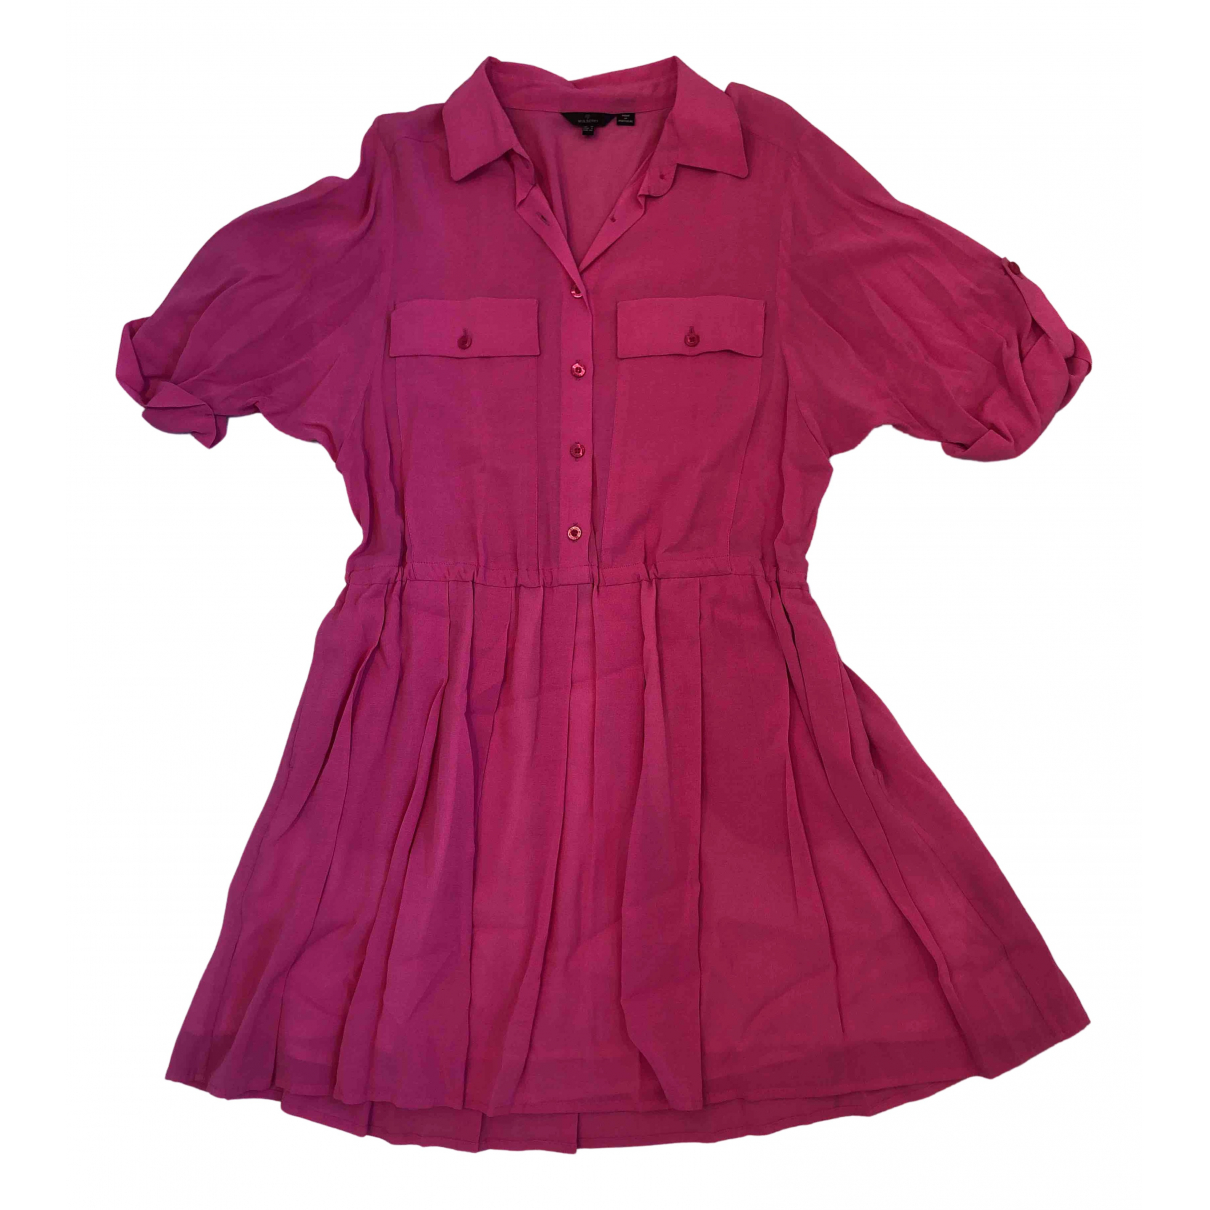 Mulberry N Pink dress for Women 10 UK